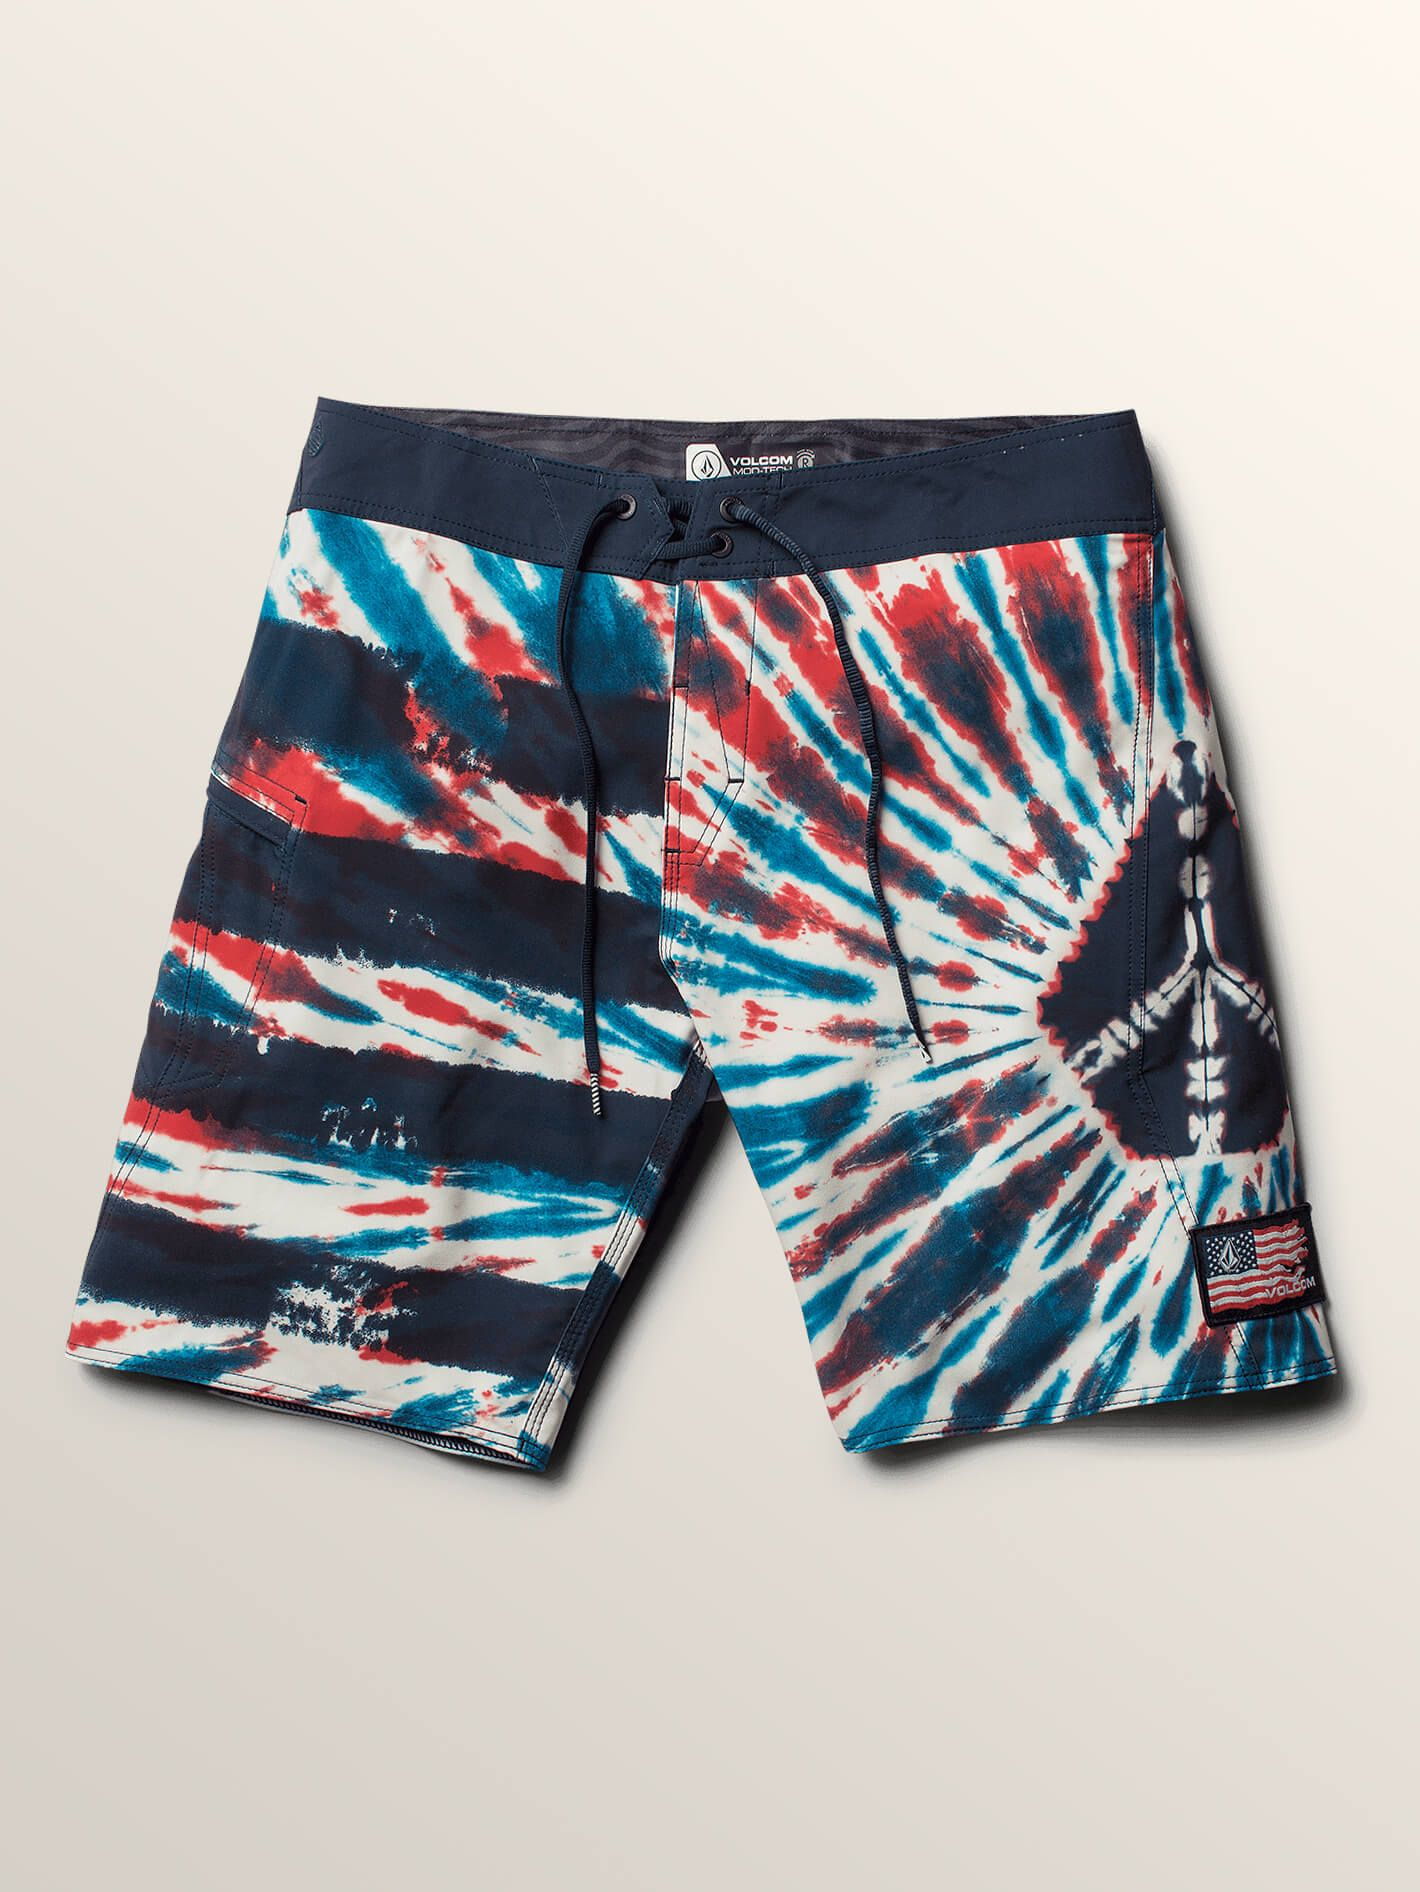 Save with new discounts on Men's Boardshorts